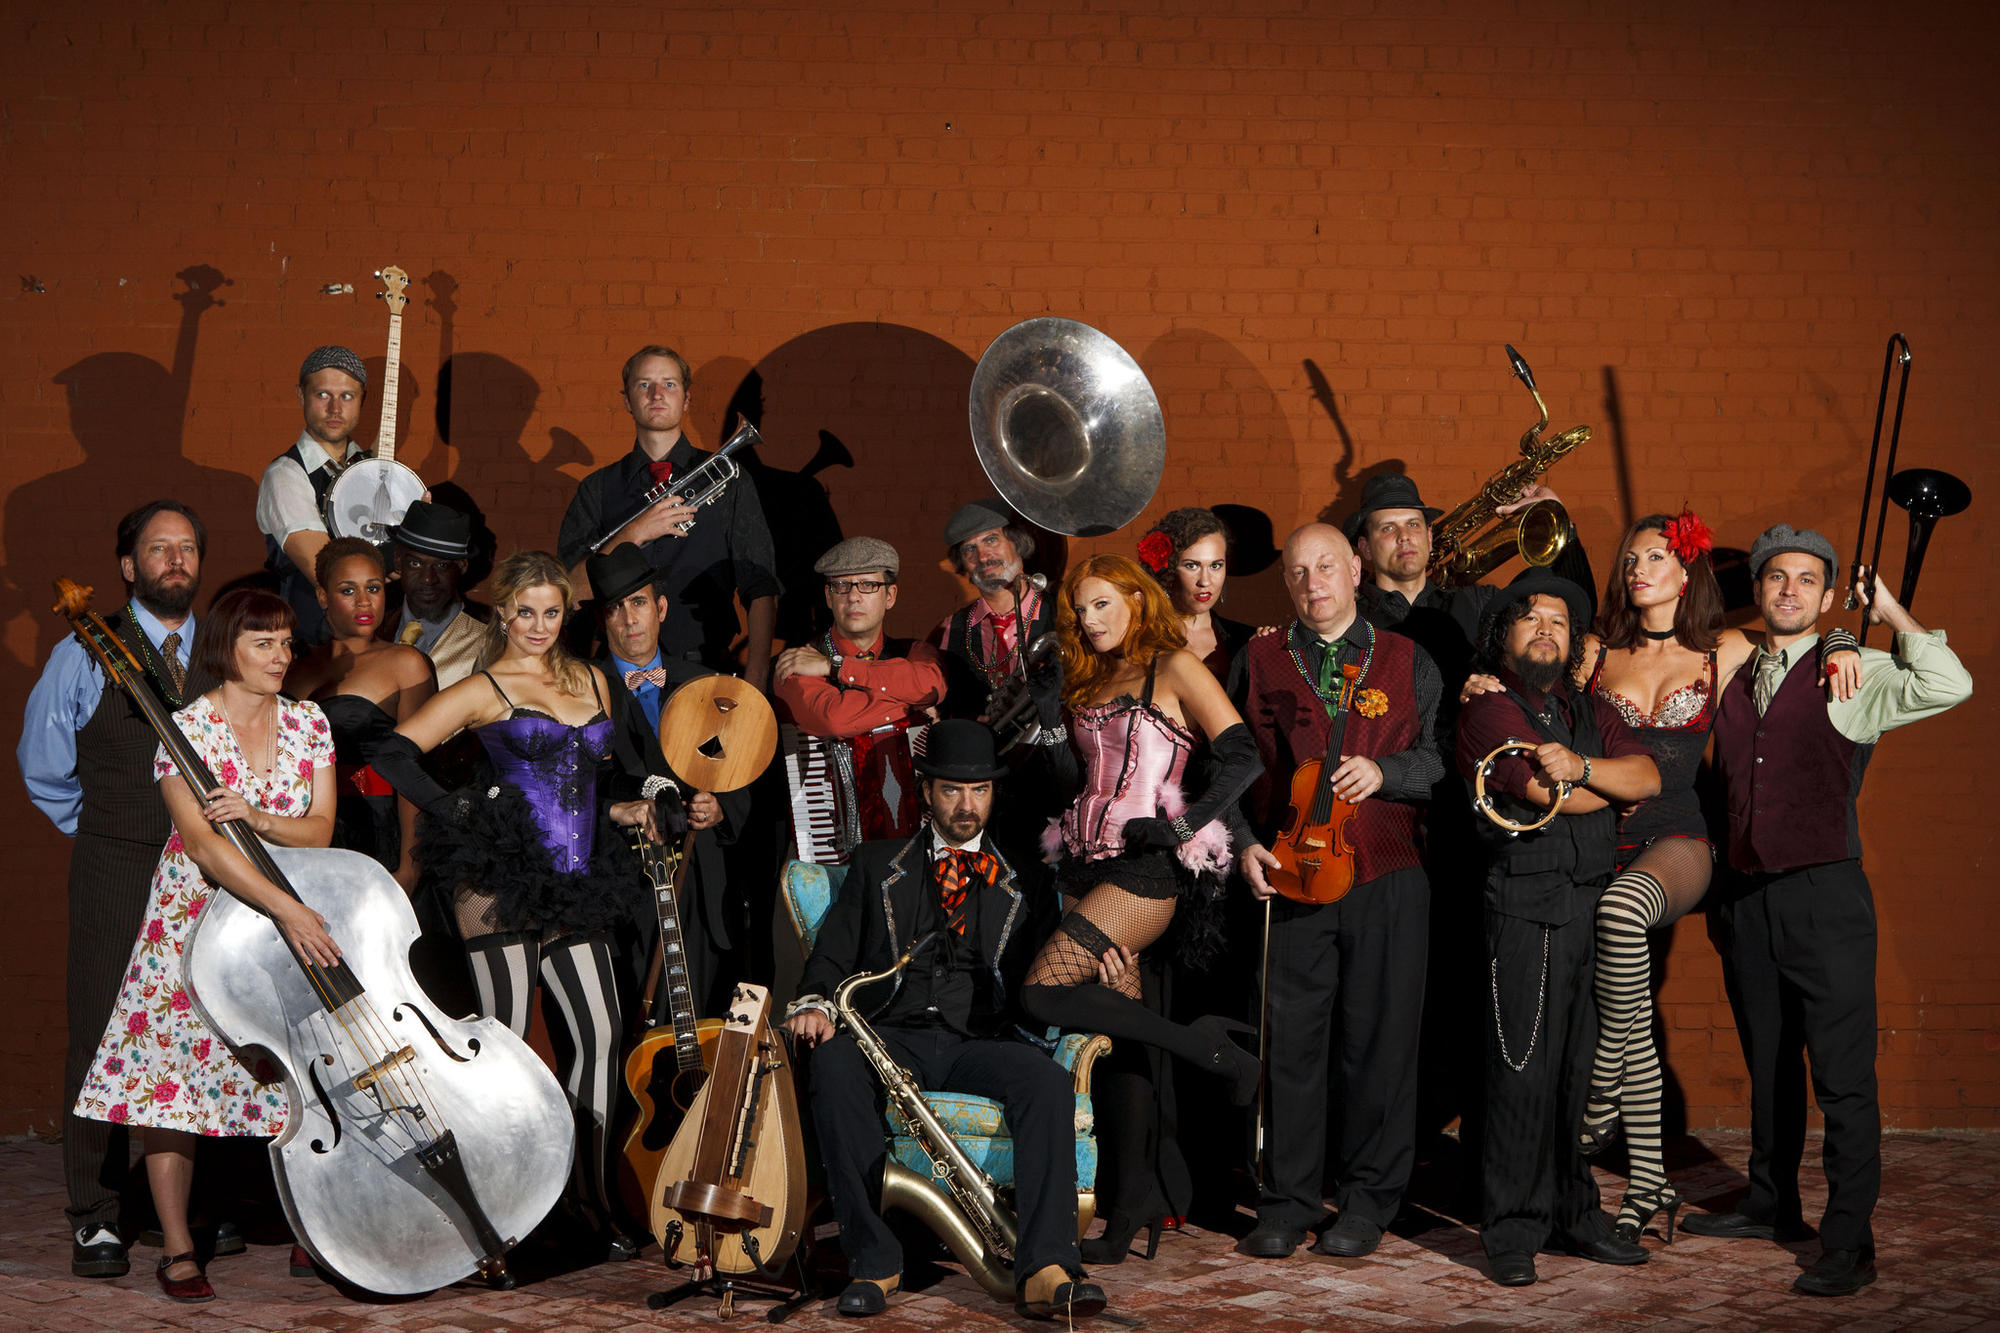 Band leader Vaud Overstreet (aka Andy Comeau), center, poses with his band Vaud & the Villains outside of Cafe Club Fais Do–Do on Sept. 15, 2012 in Los Angeles.